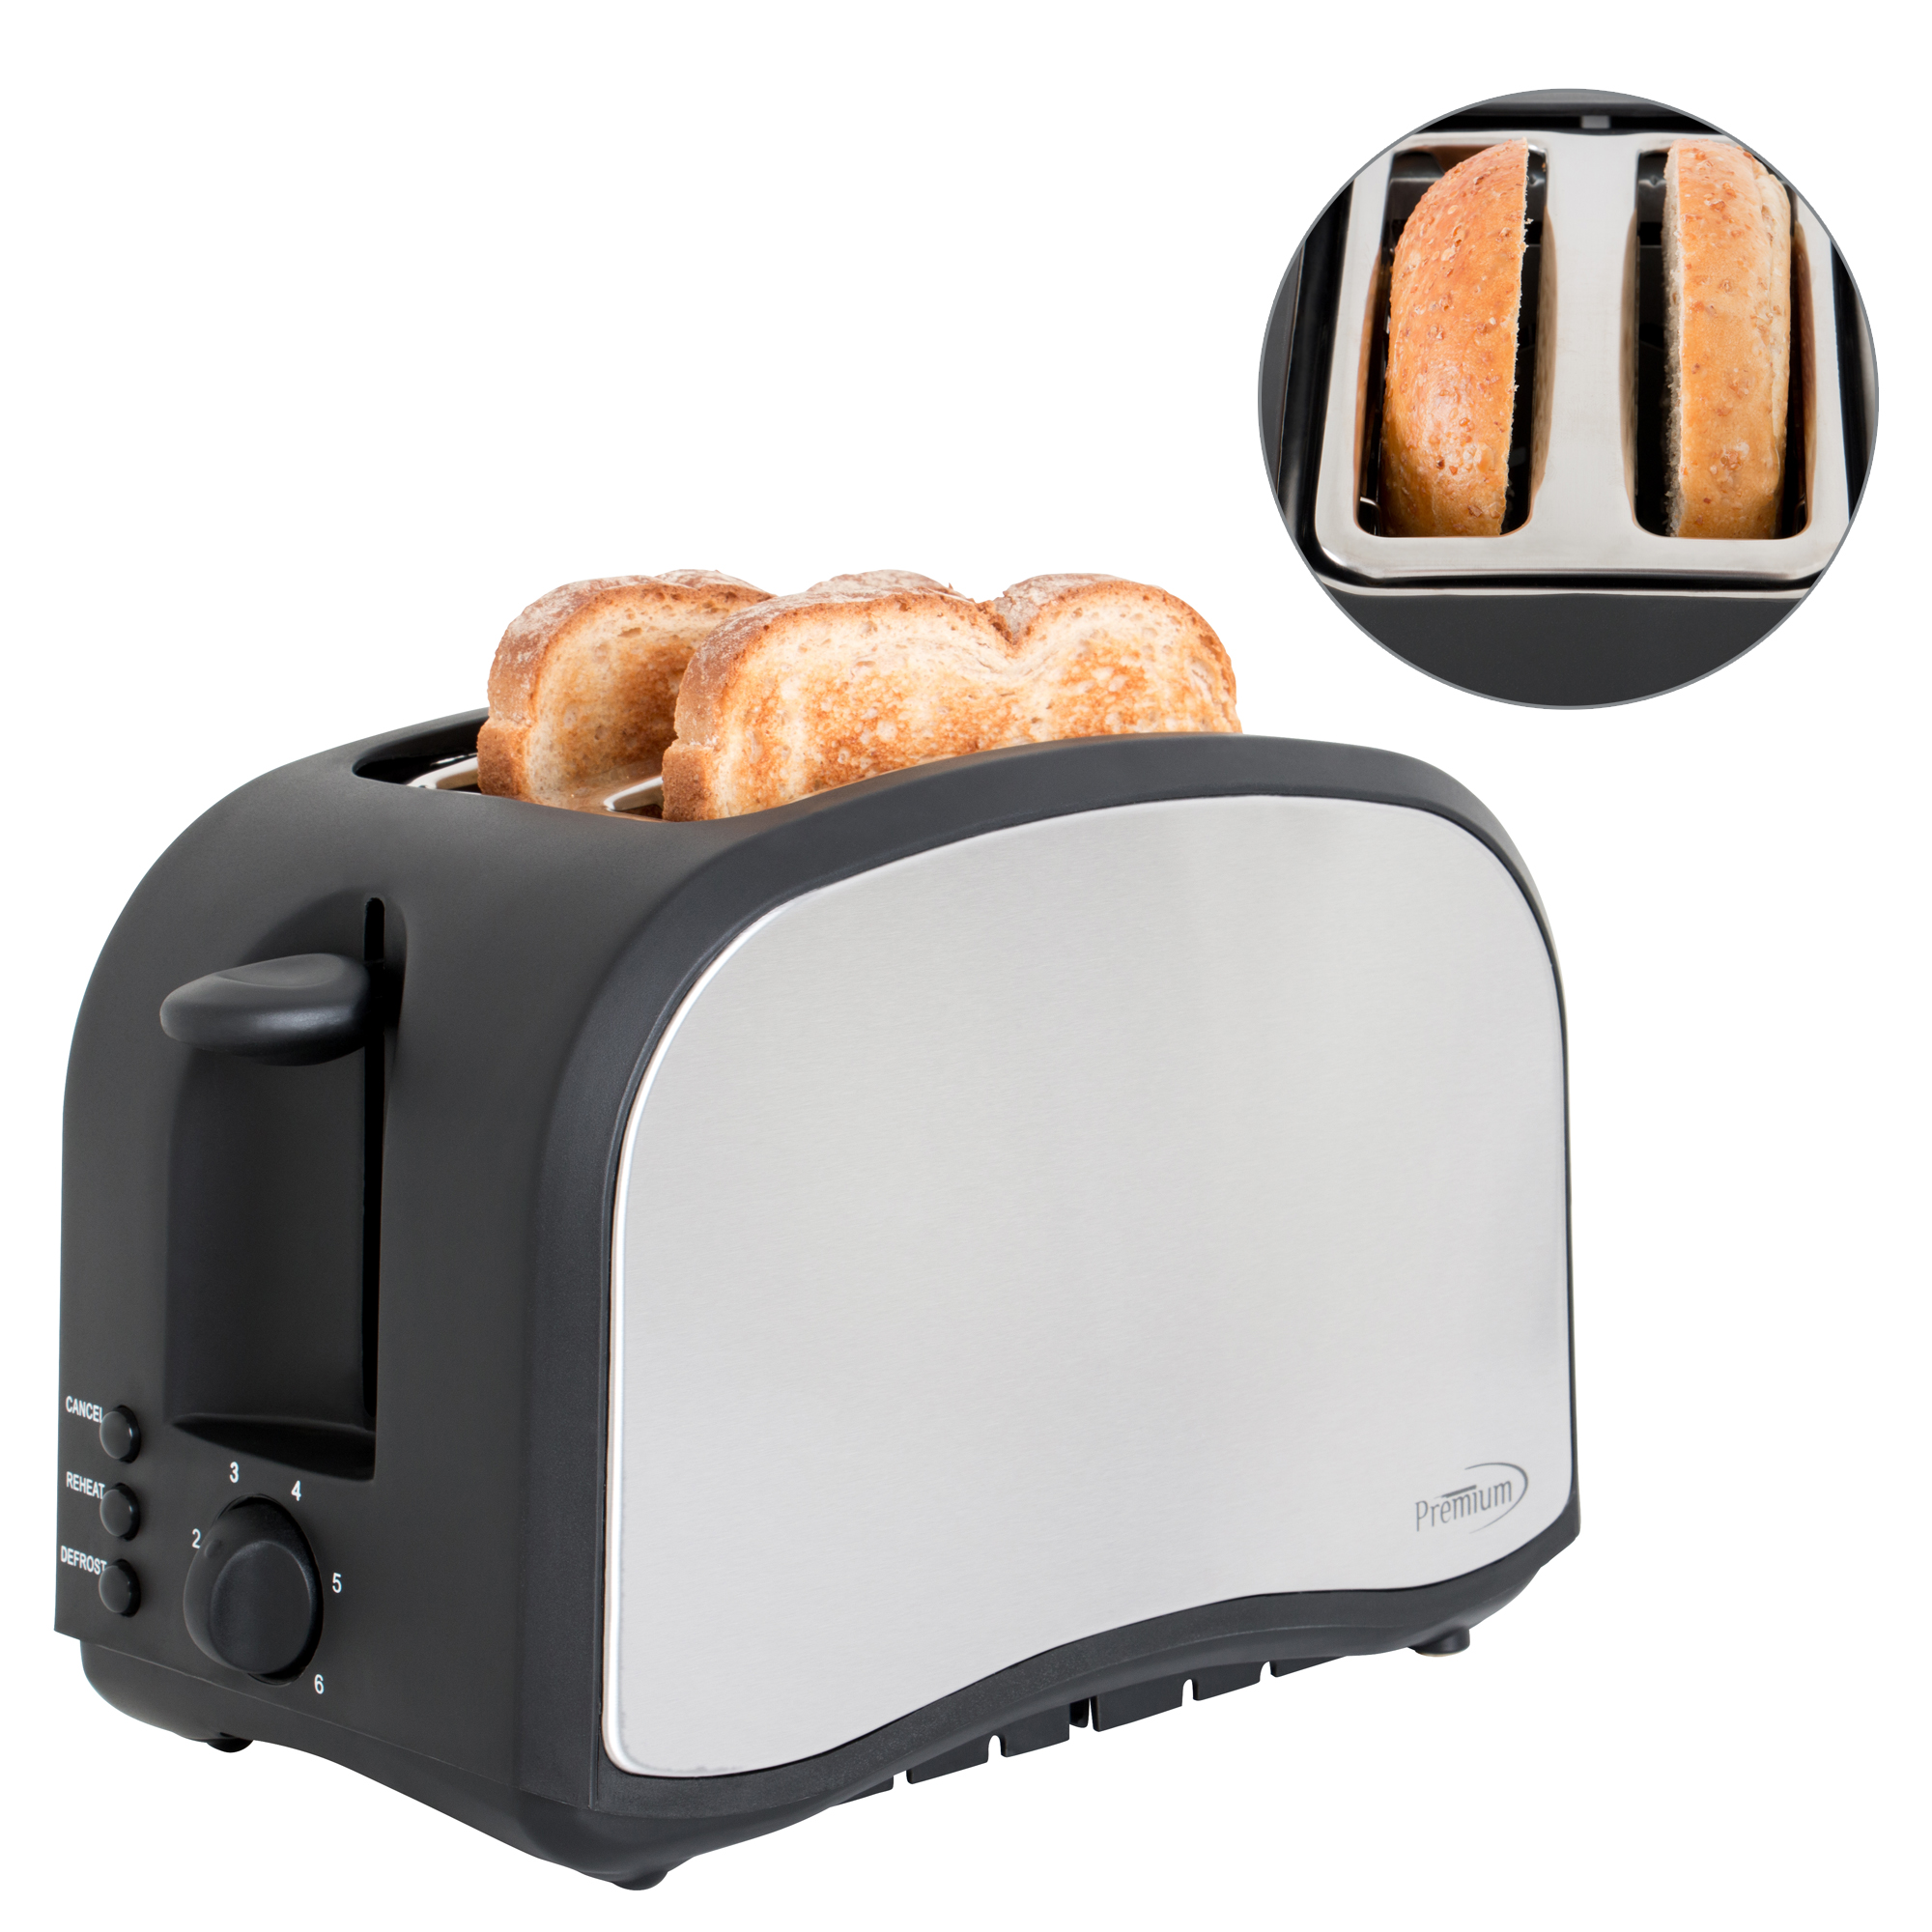 Types Of Toasters ~ Premium appliances slice toaster stainless steel